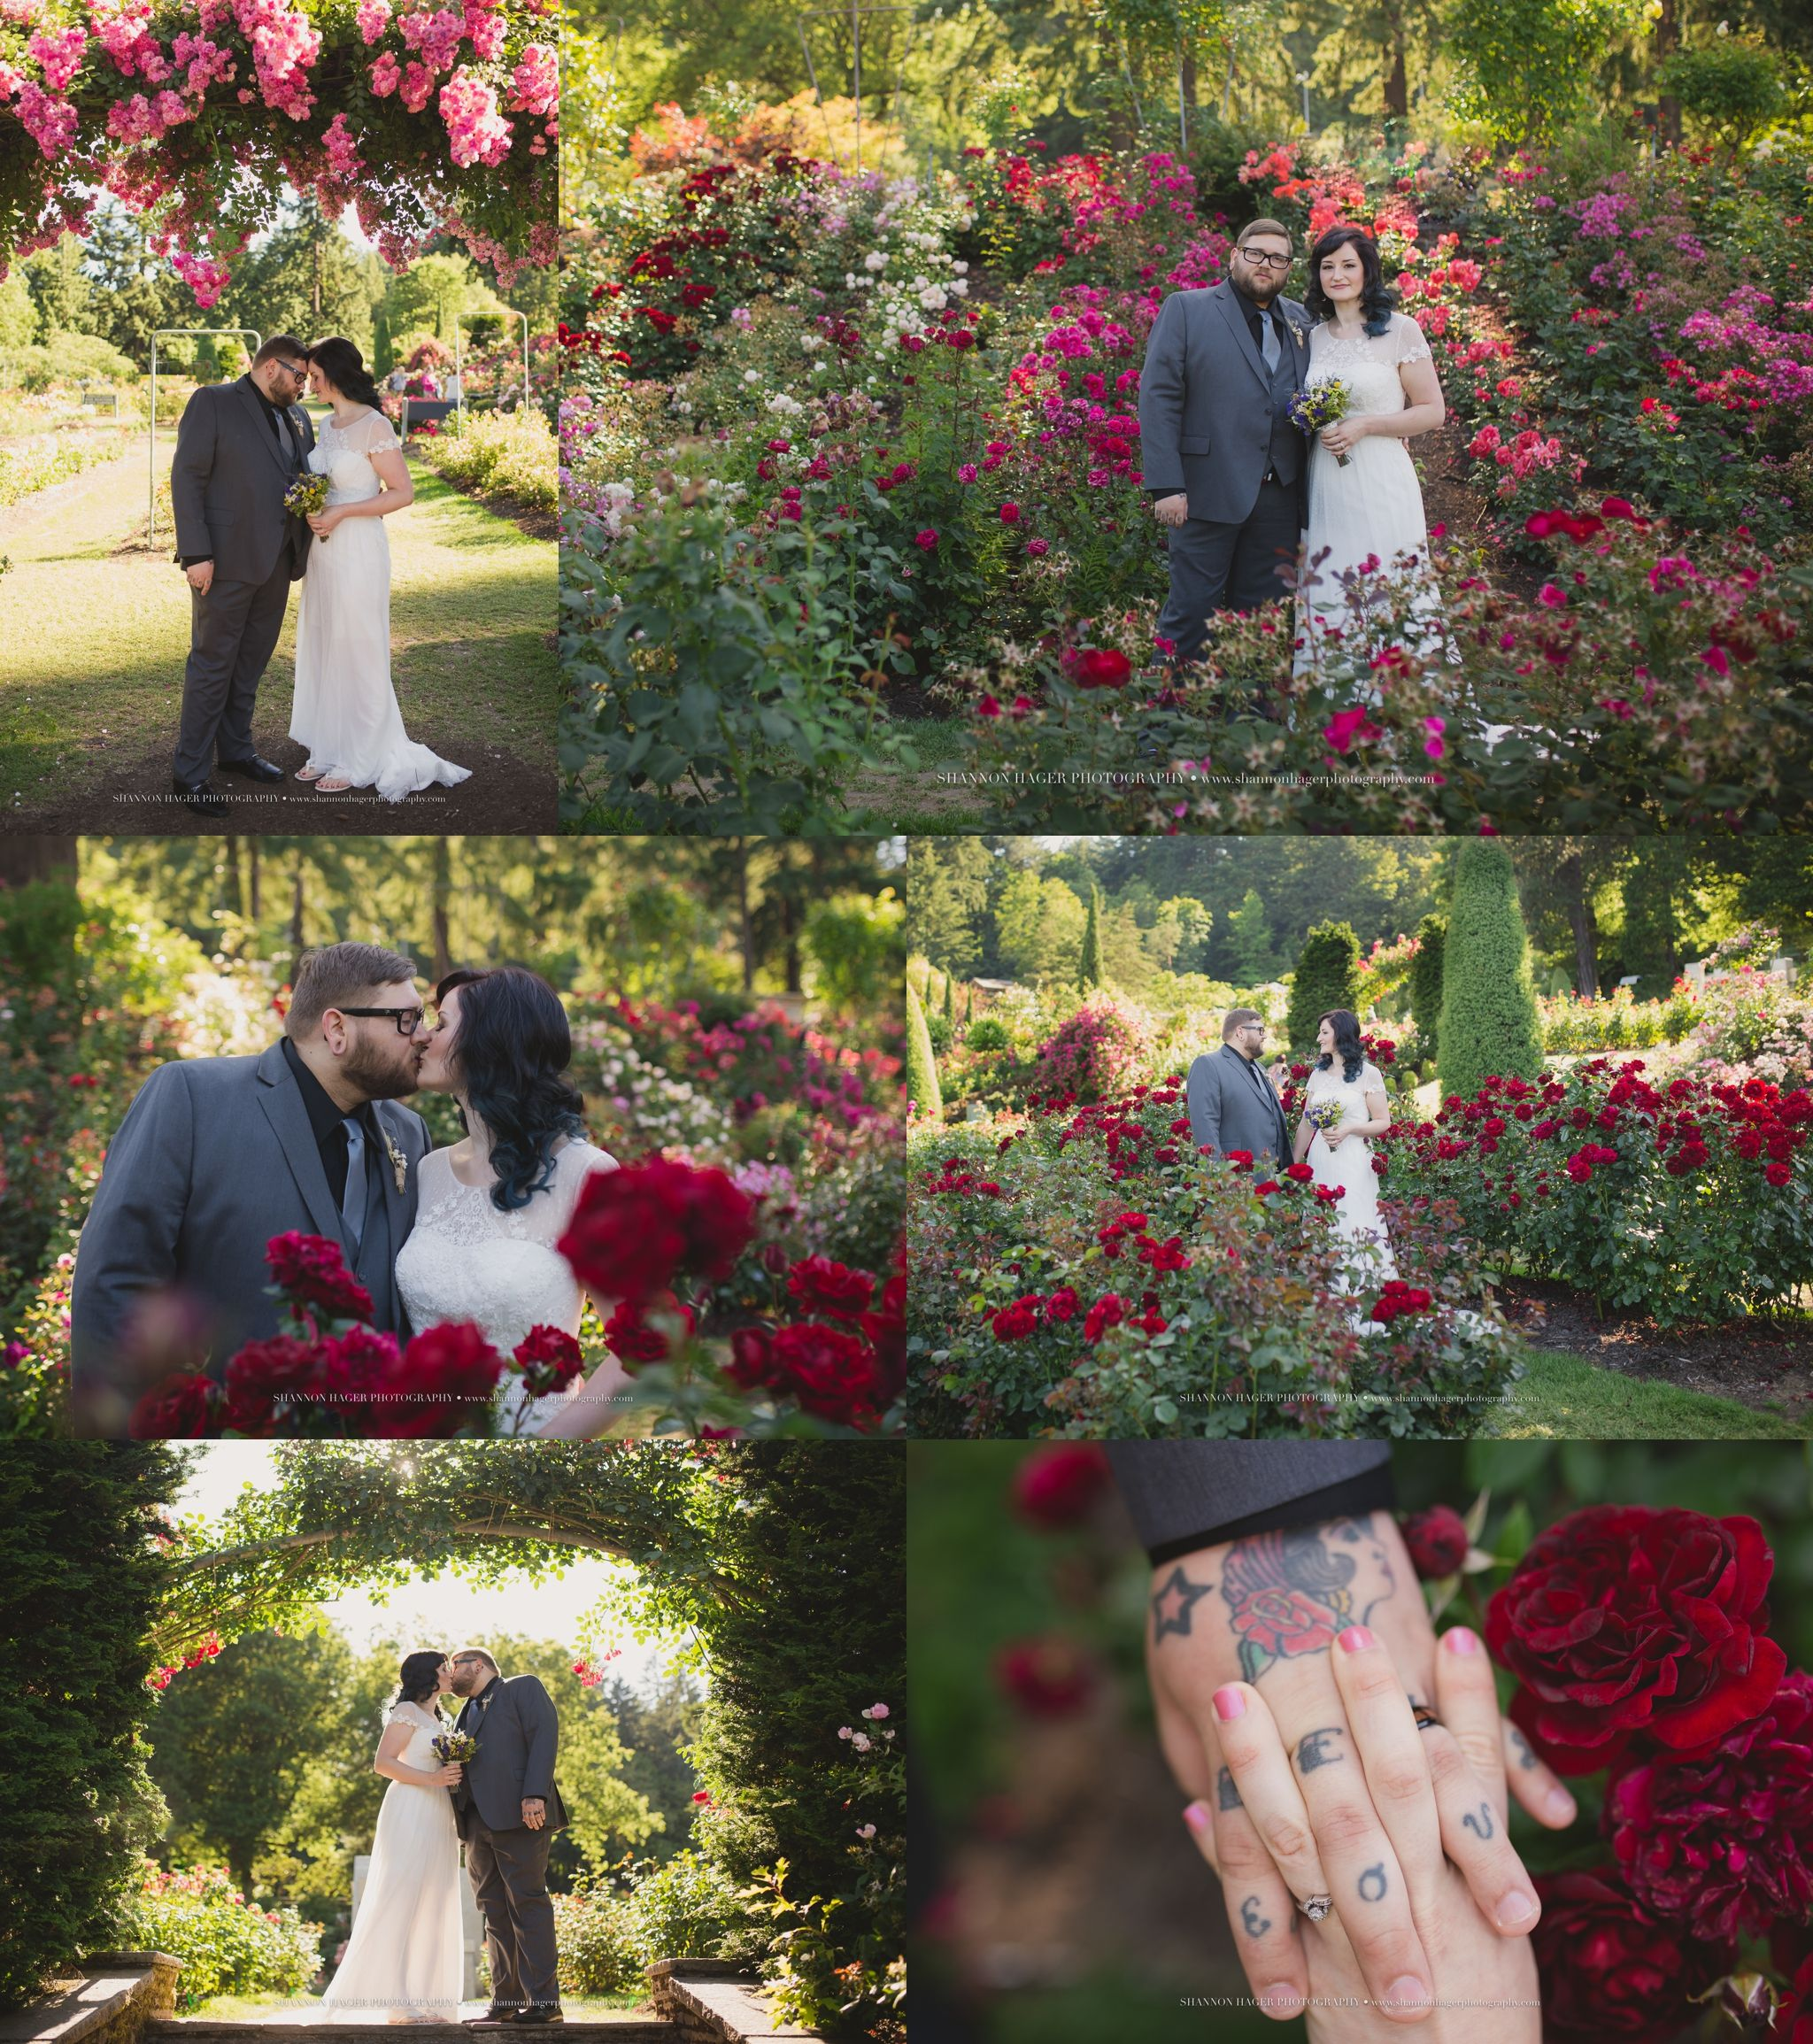 Portland Elopement Photographer Rose Garden Wedding Where To Elope In Oregon Shannon Hager